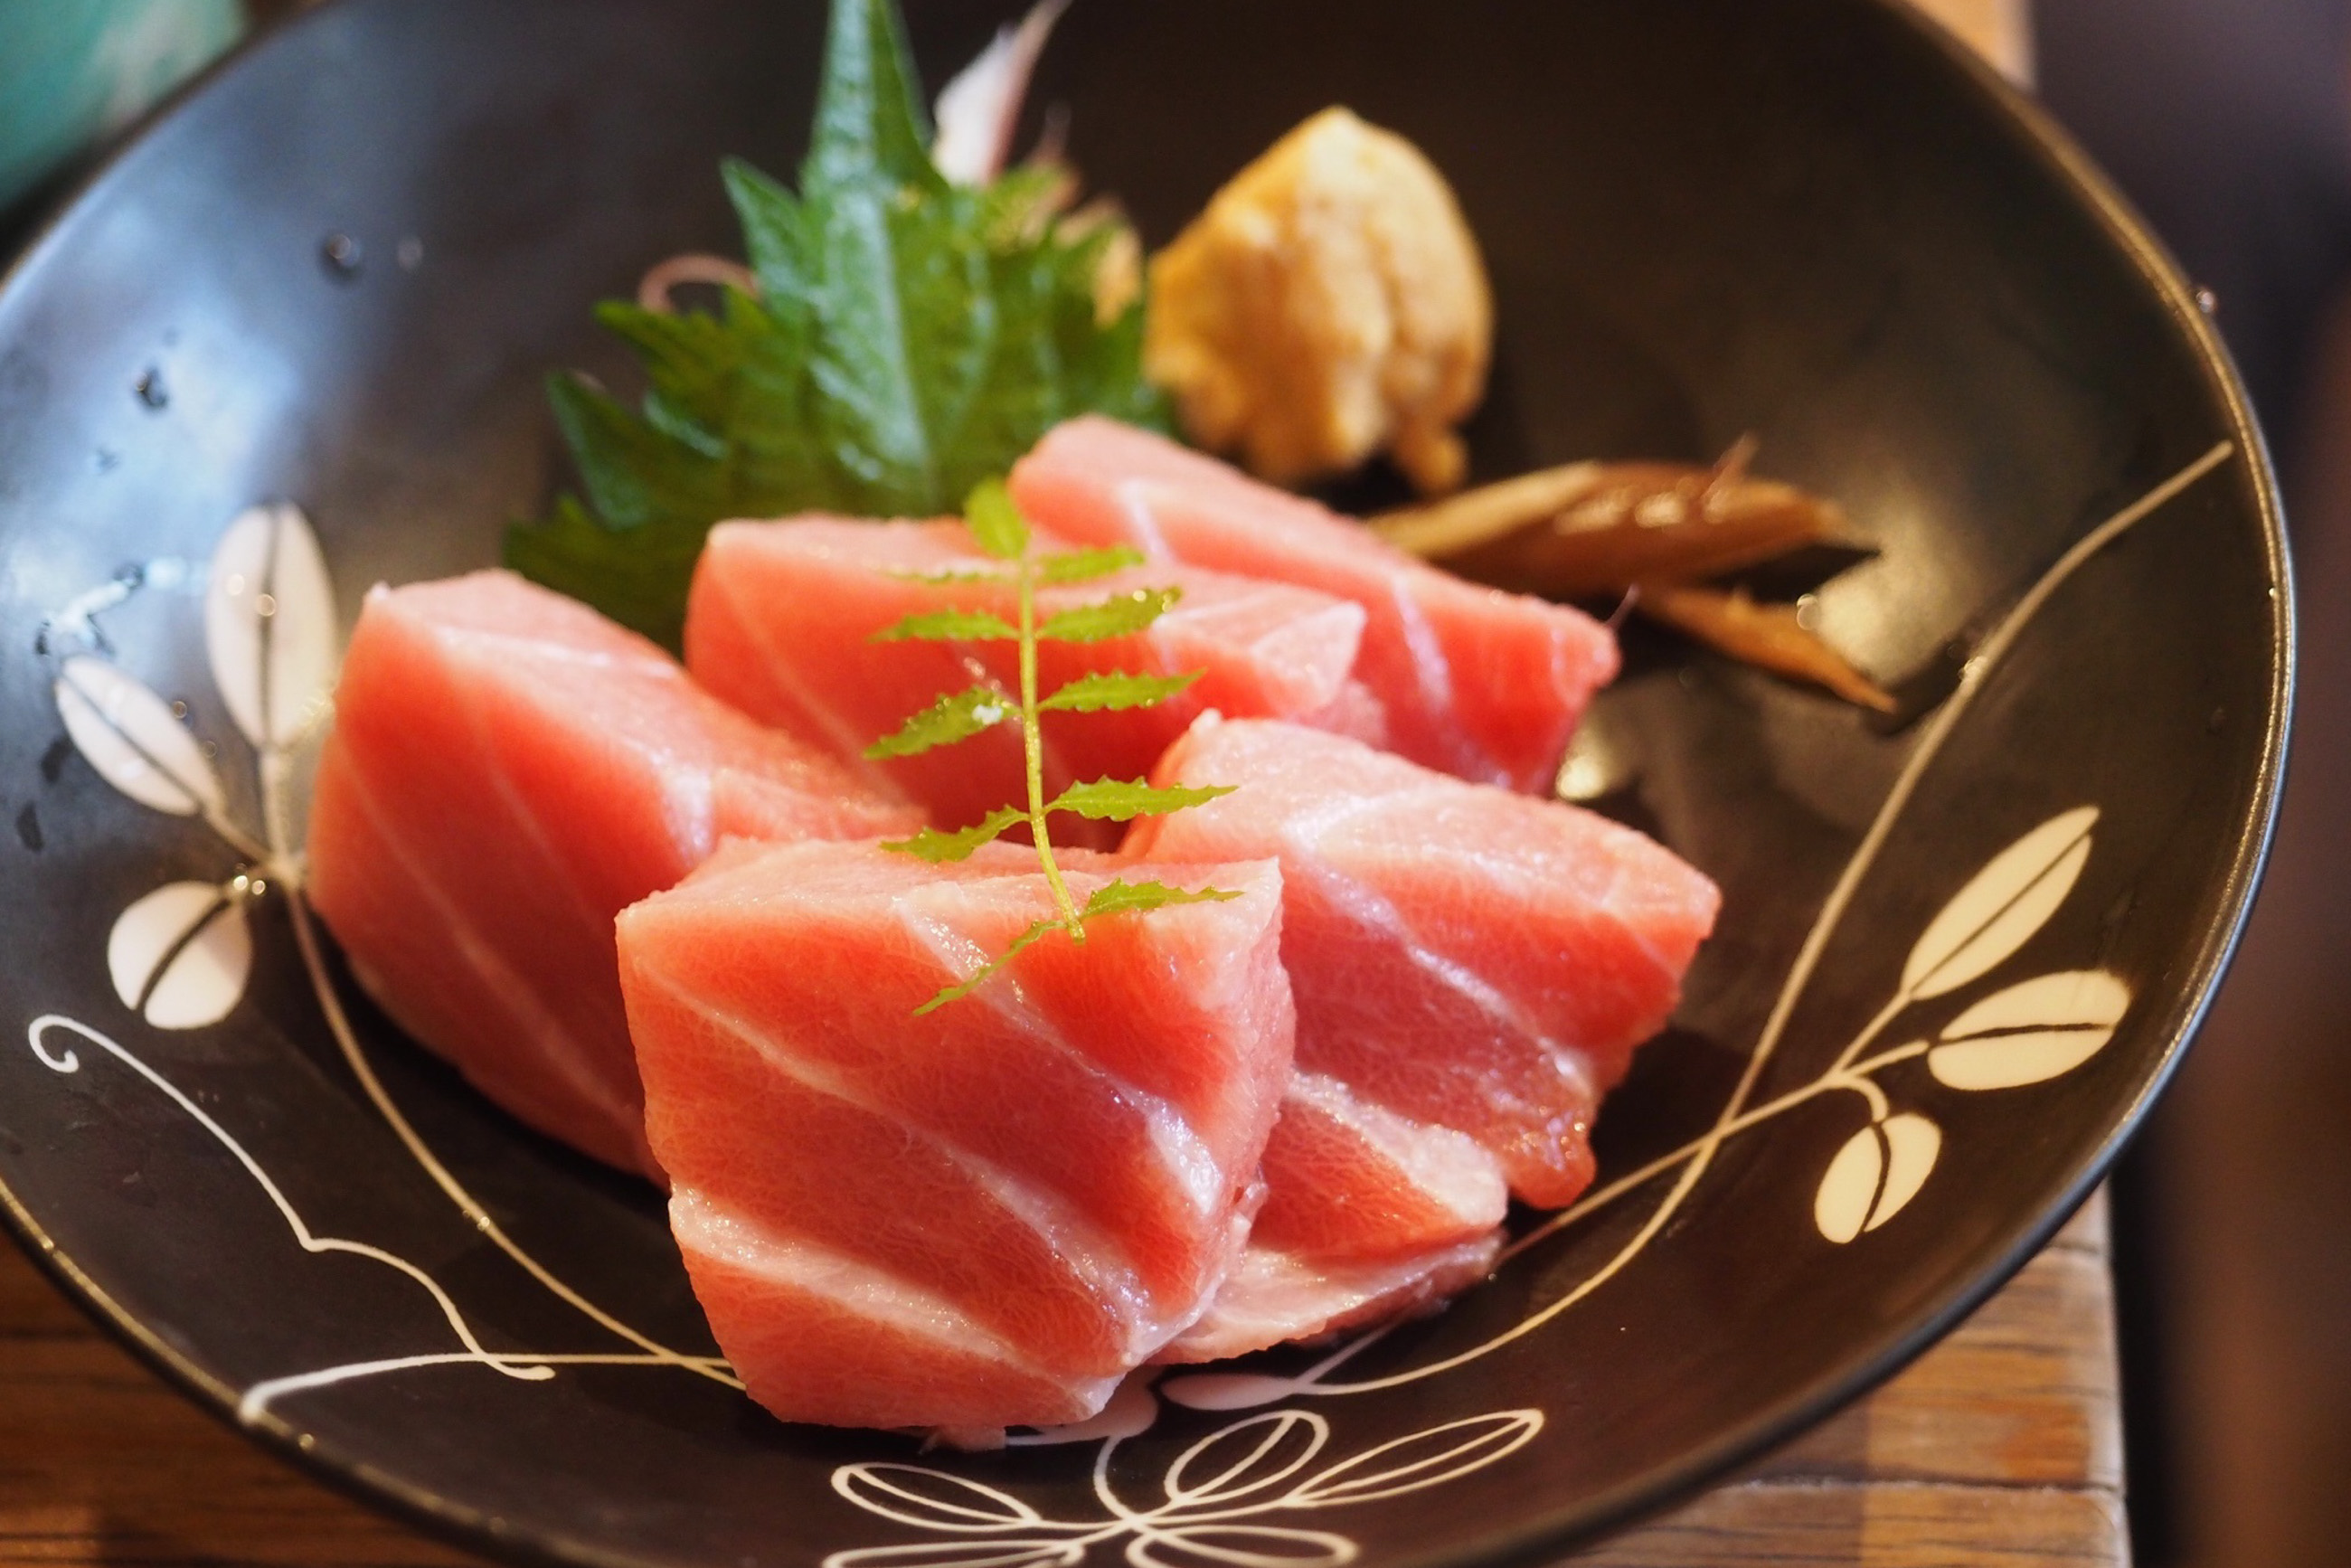 https://bubo.sk/uploads/galleries/3469/sashimi-2563650.jpg